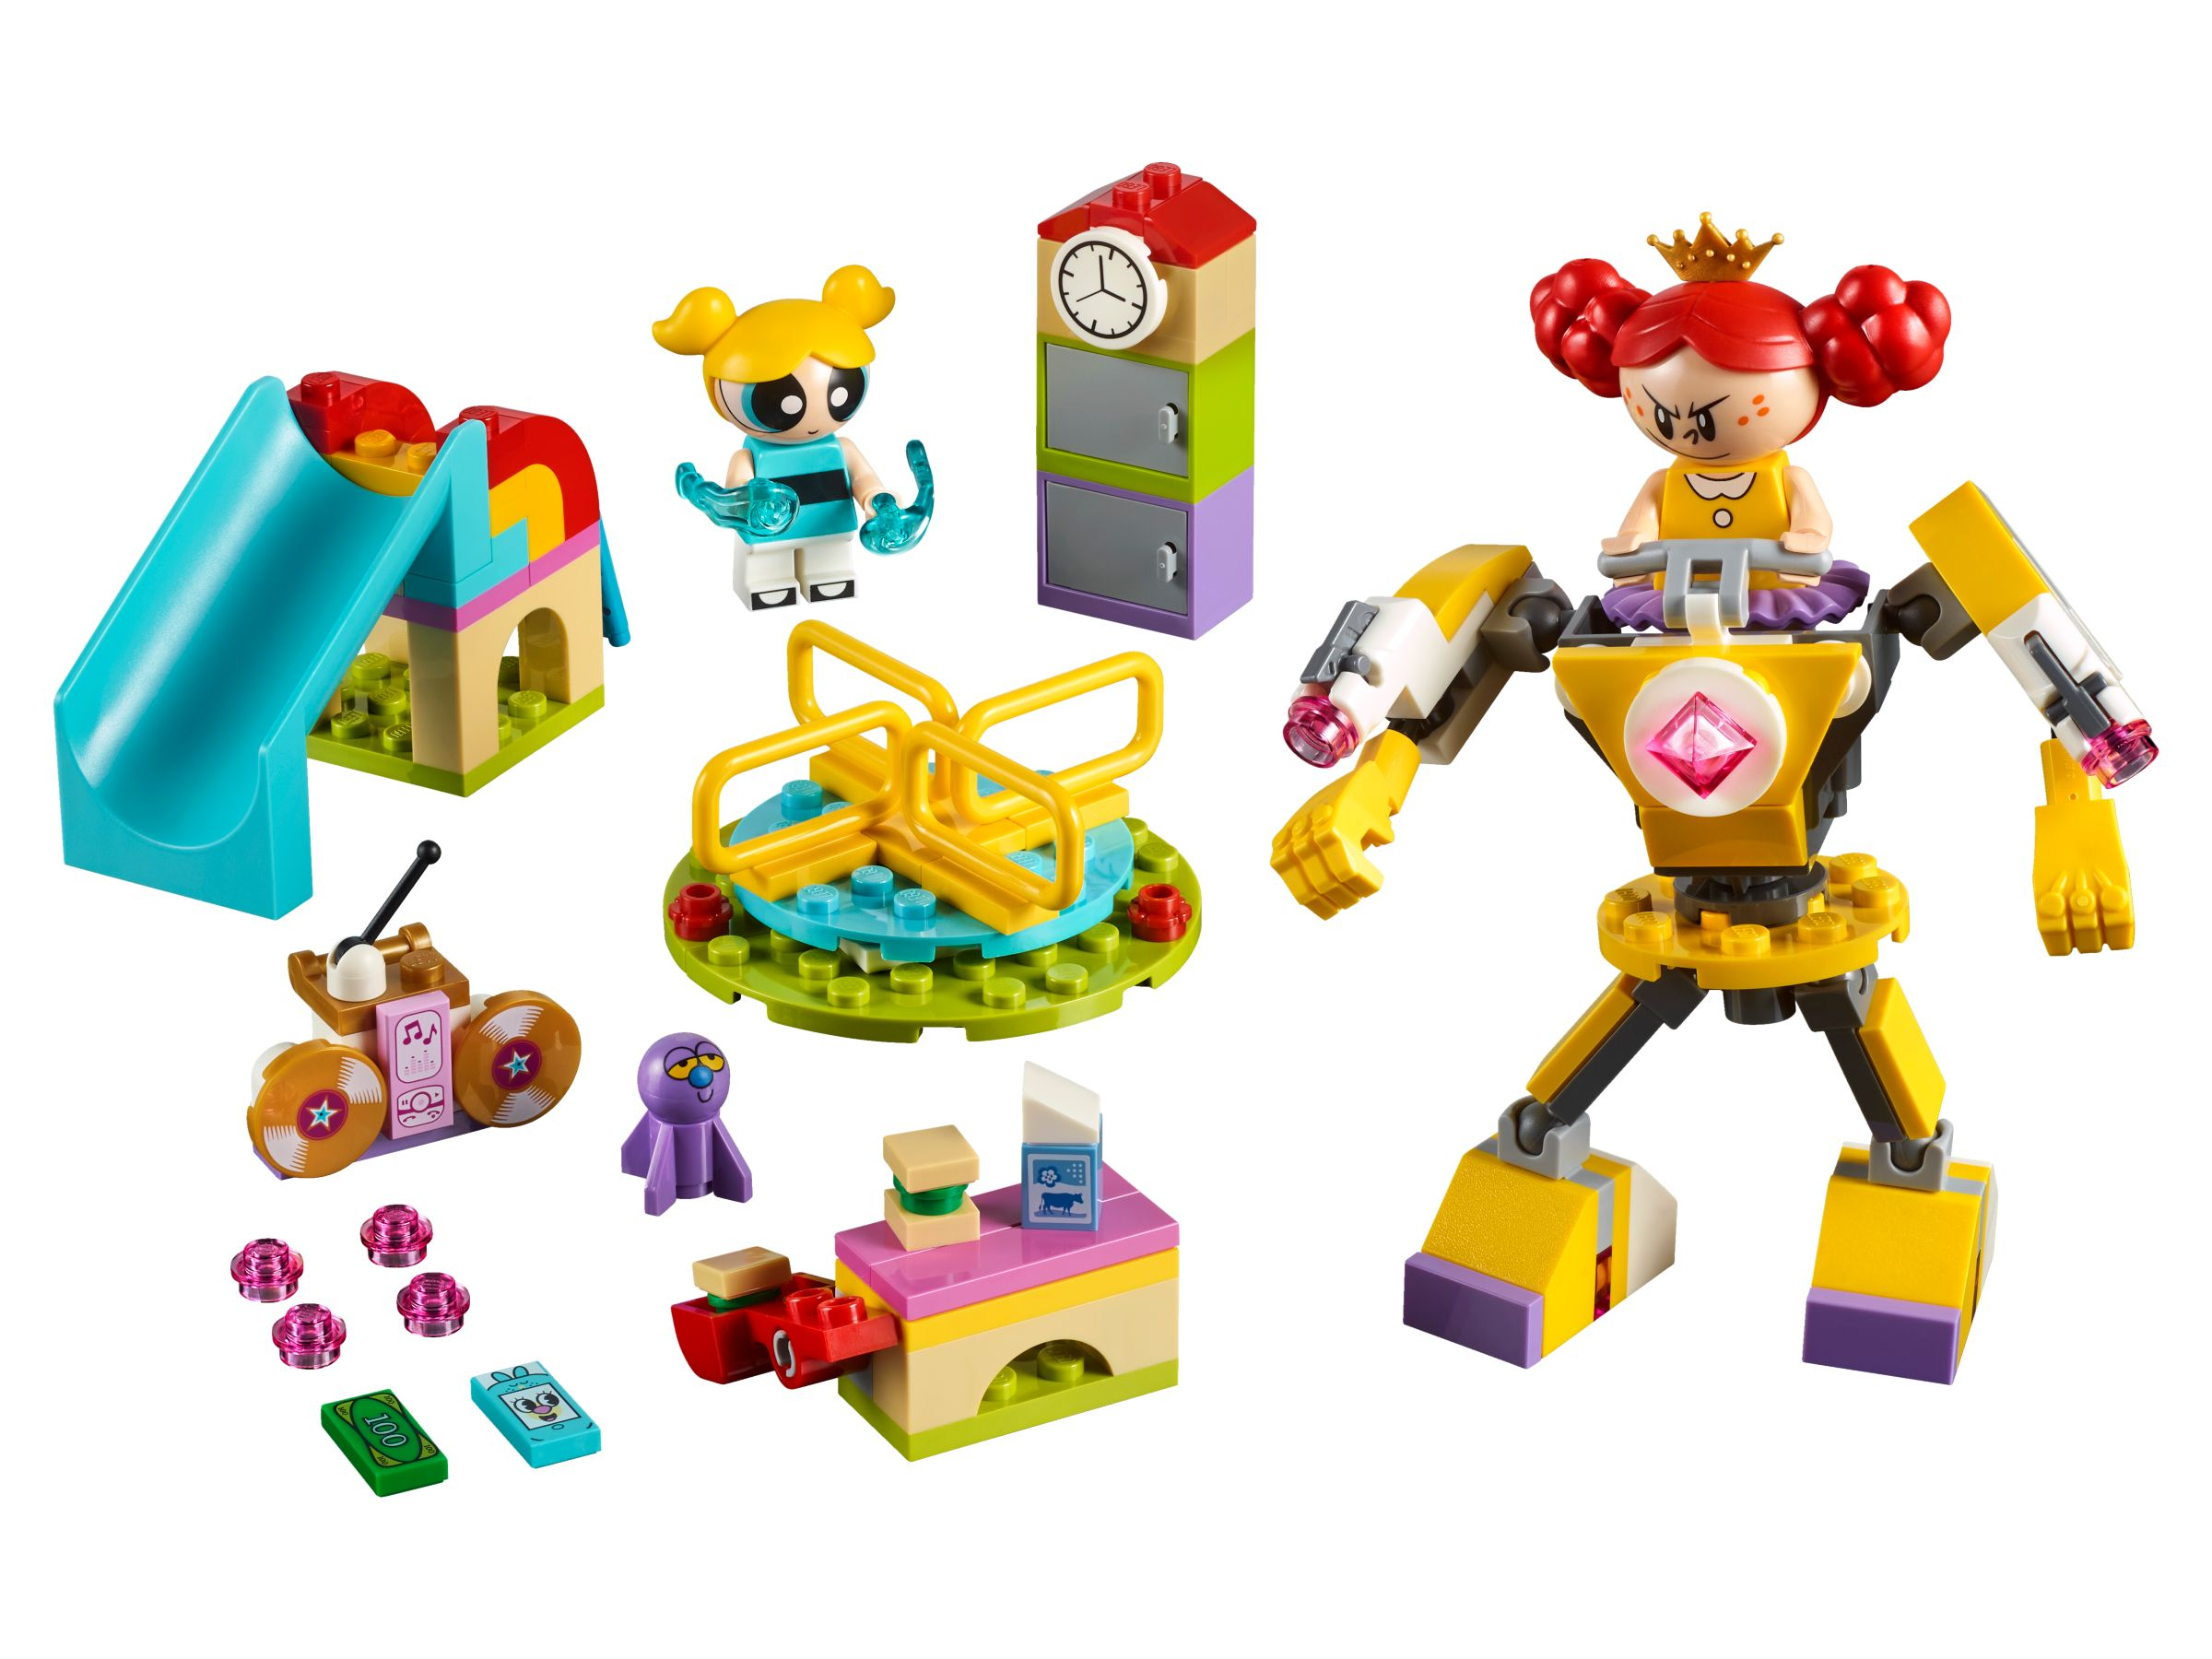 LEGO The Powerpuff Girls 41287 Bubbles' Spielplatzabenteuer